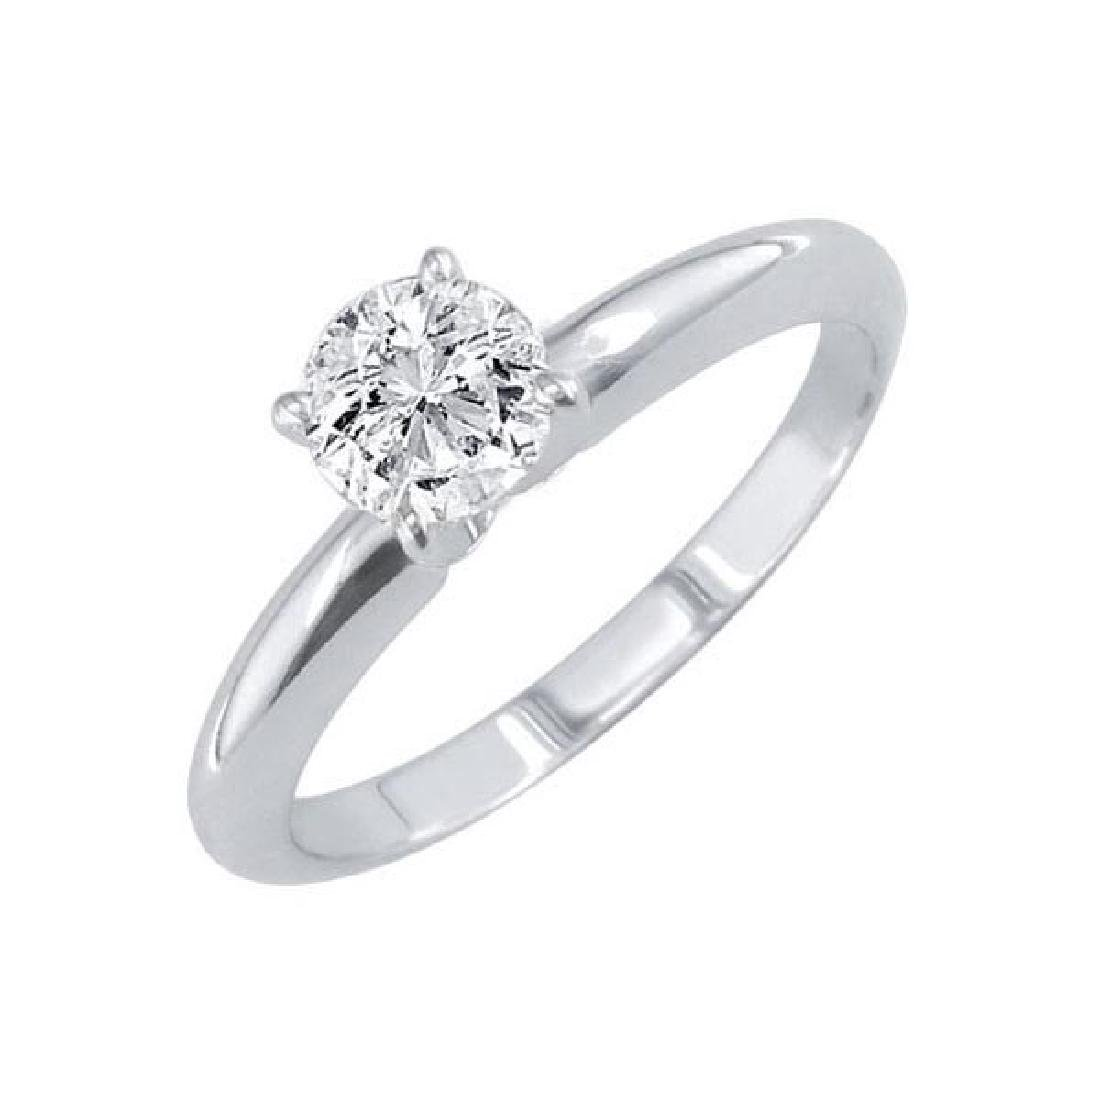 Certified 0.55 CTW Round Diamond Solitaire 14k Ring J/S